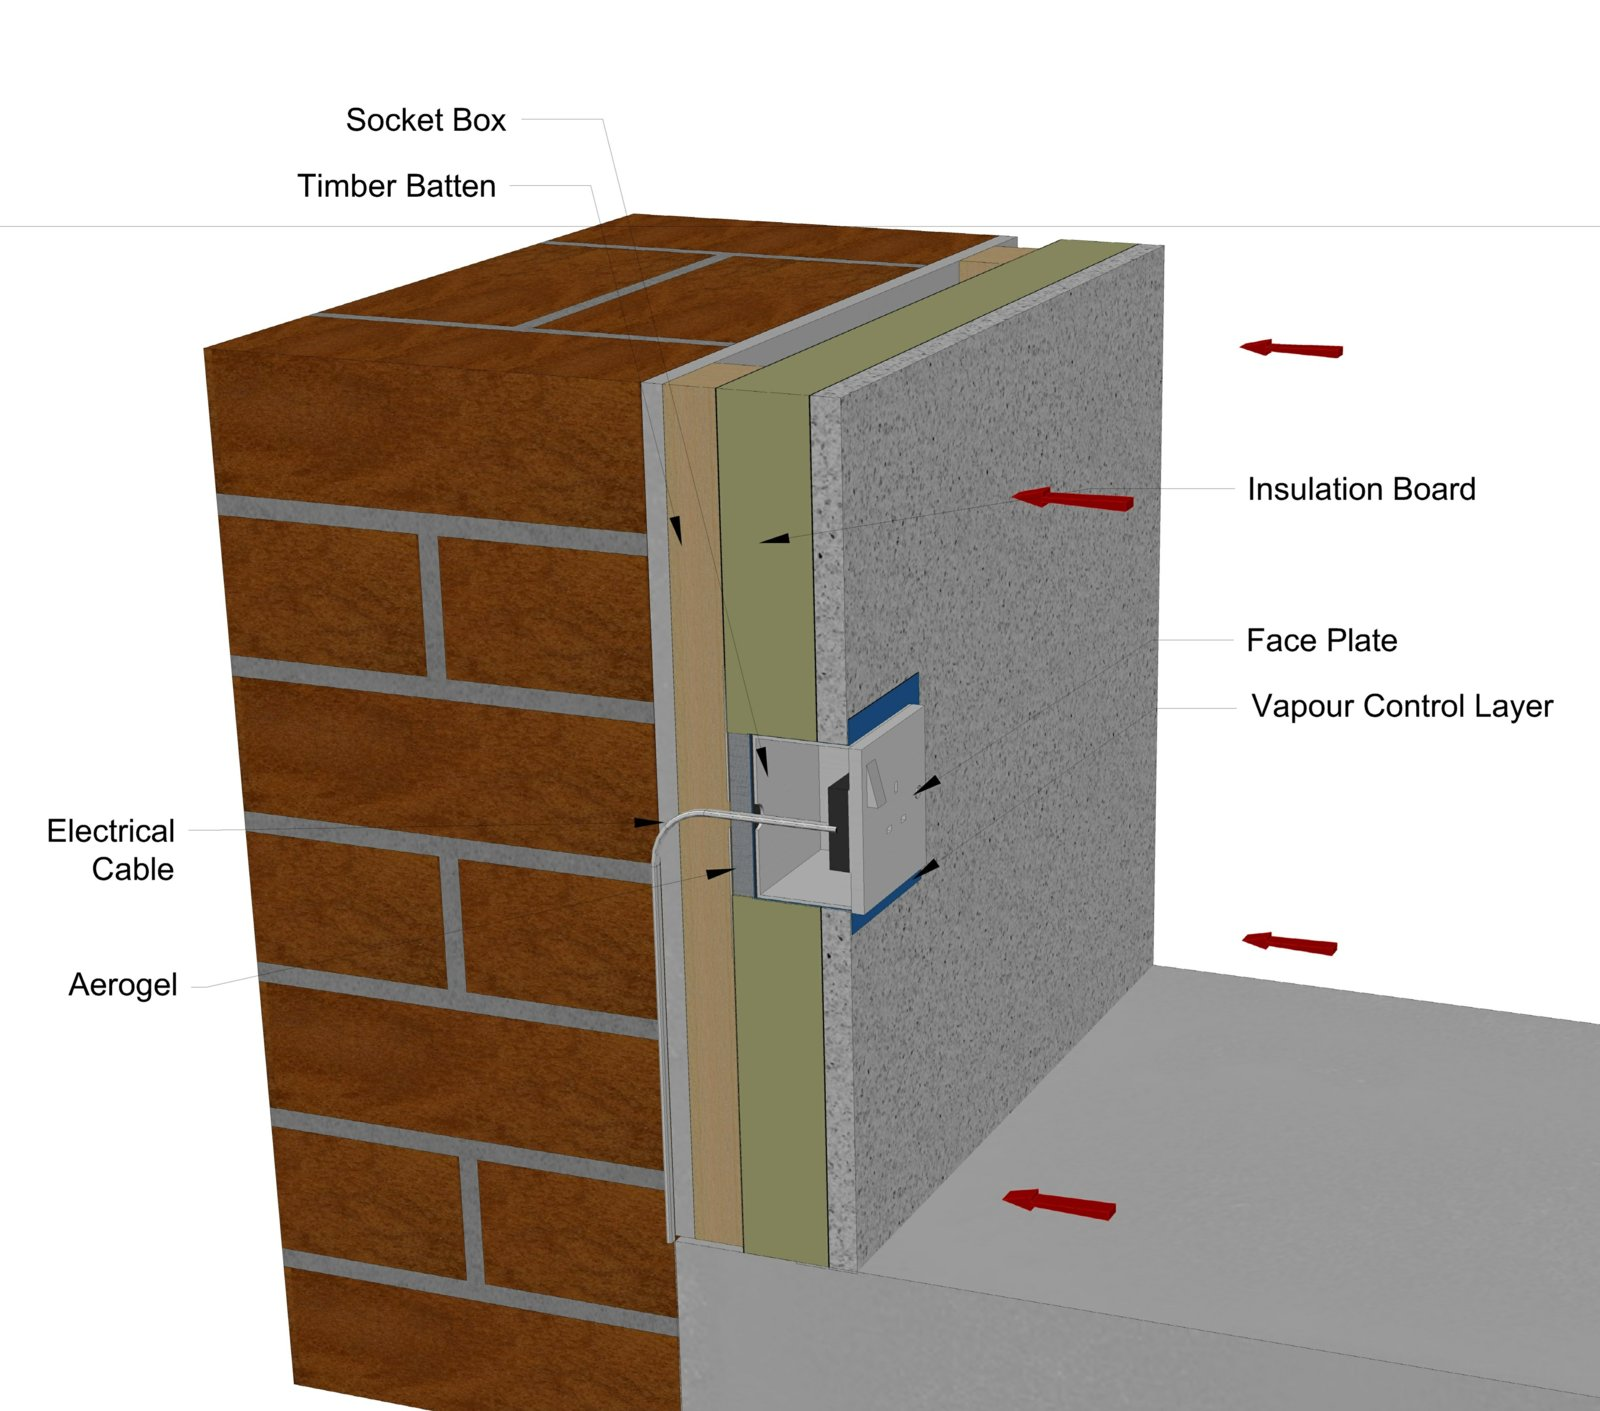 insulated-box-installation-sectogetherff-Layout2-2-01.jpeg